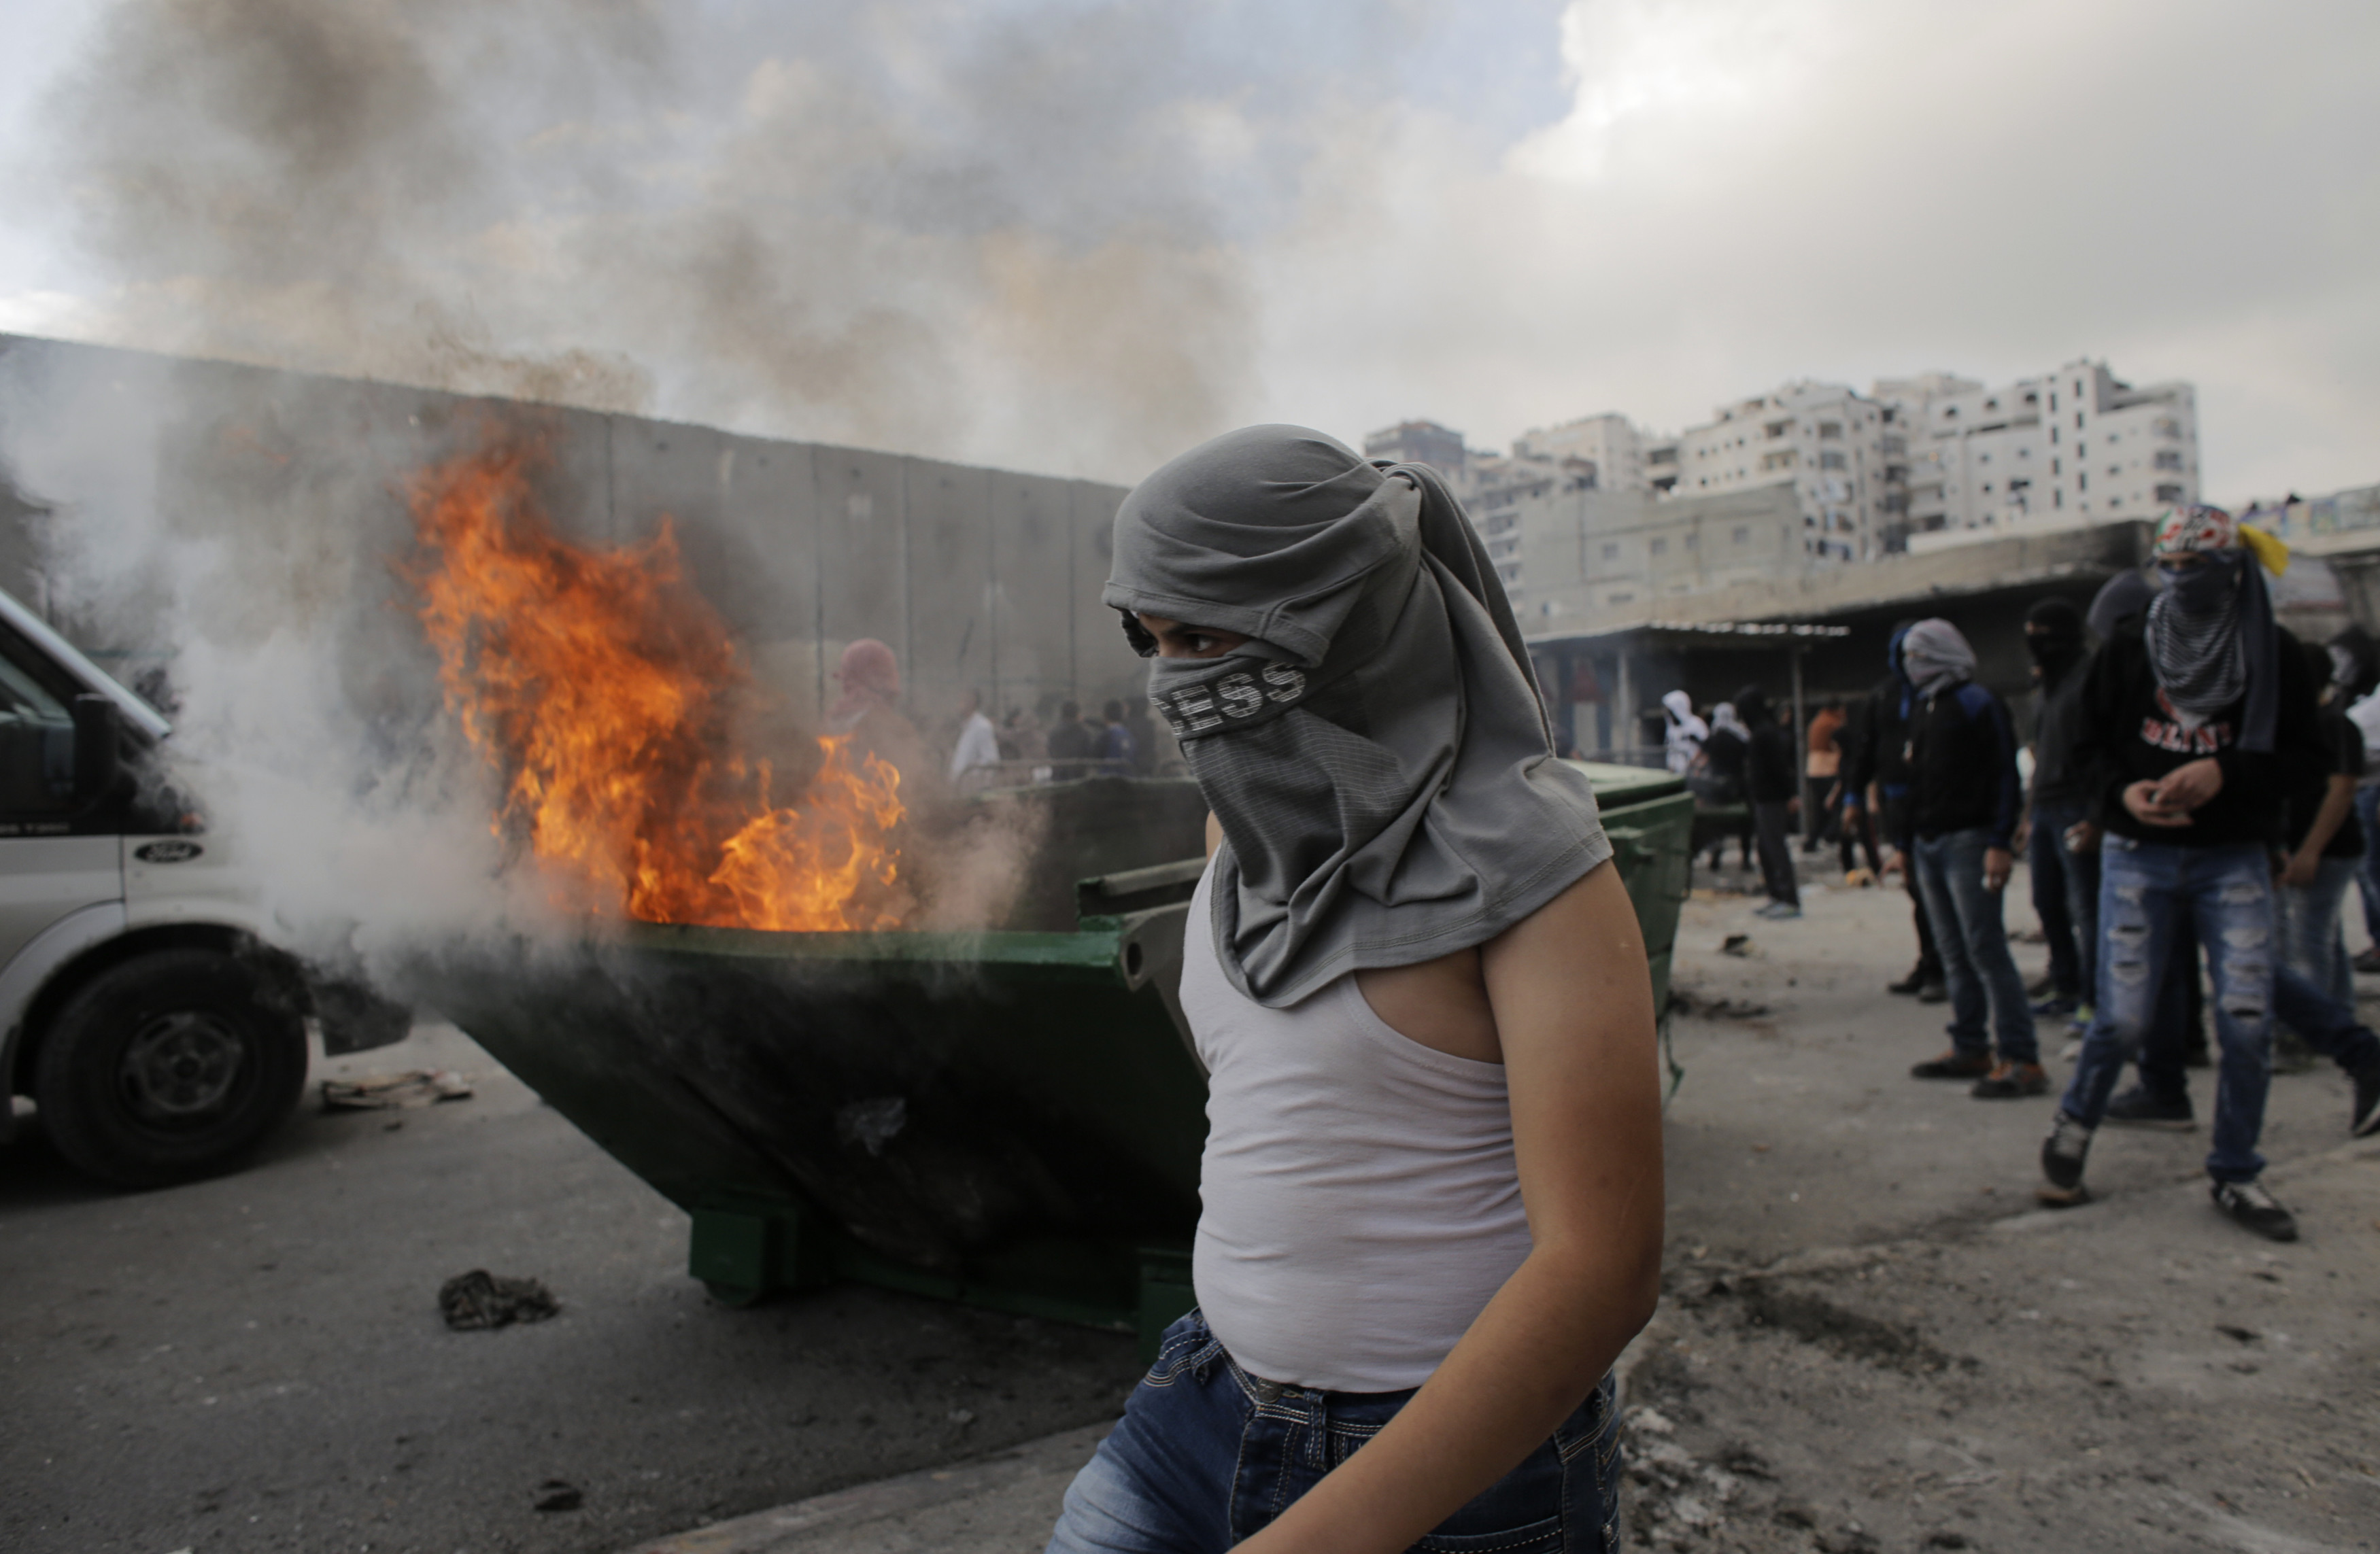 A Palestinian stone-thrower stands in front of garbage set ablaze during clashes with Israeli police on the outskirts of Jerusalem near Shuafat refugee camp November 5, 2014. (Reuters)